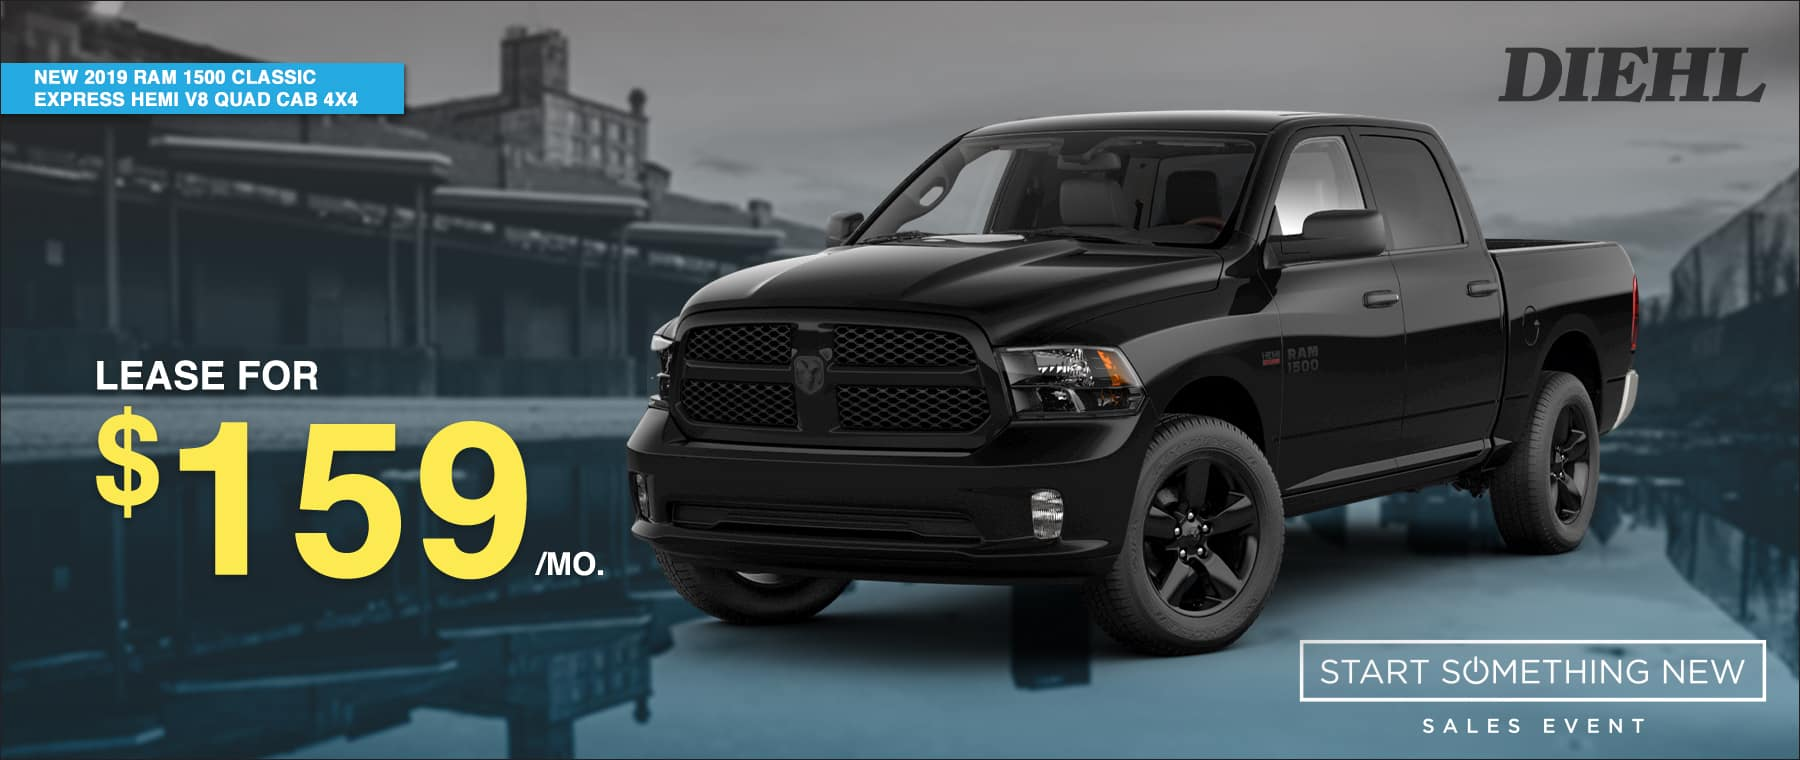 D190952_2019RAMCLASSICC Diehl Chrysler dodge jeep ram Robinson pa diehl automotive group start something new sales event RAM LEASE SPECIAL